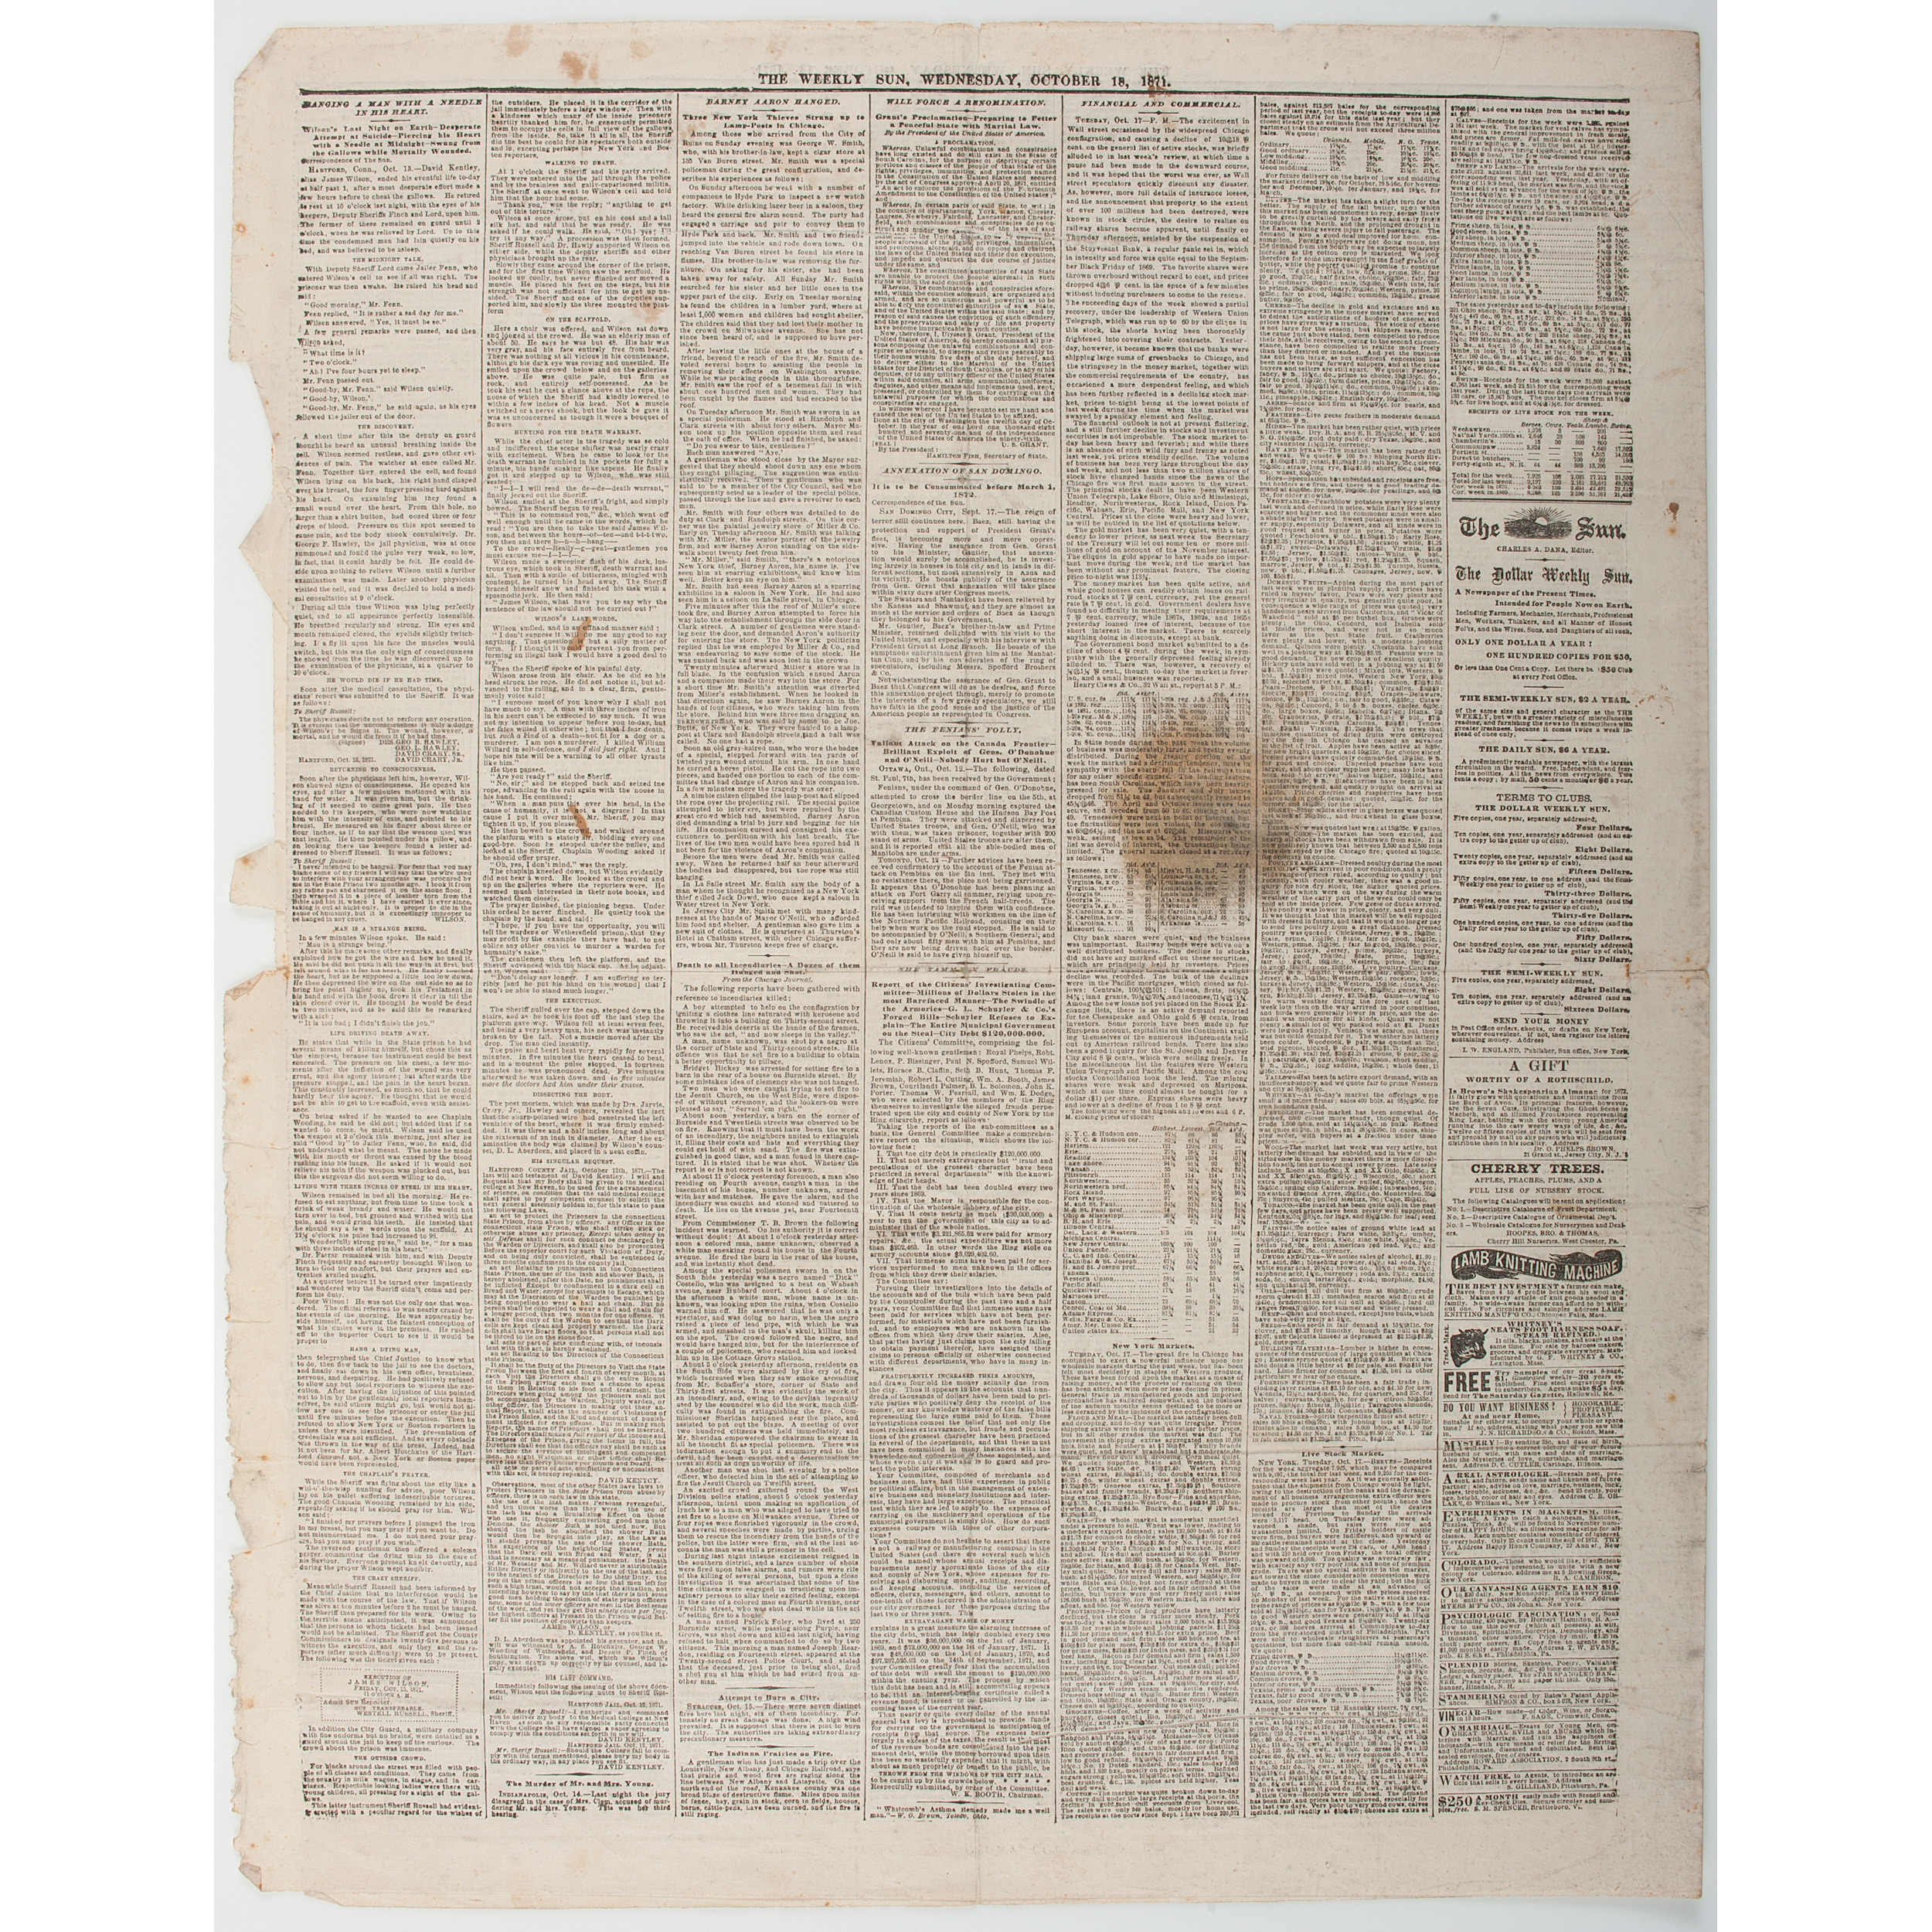 The Great Chicago Fire of 1871, Newspaper Account Including Accurate on